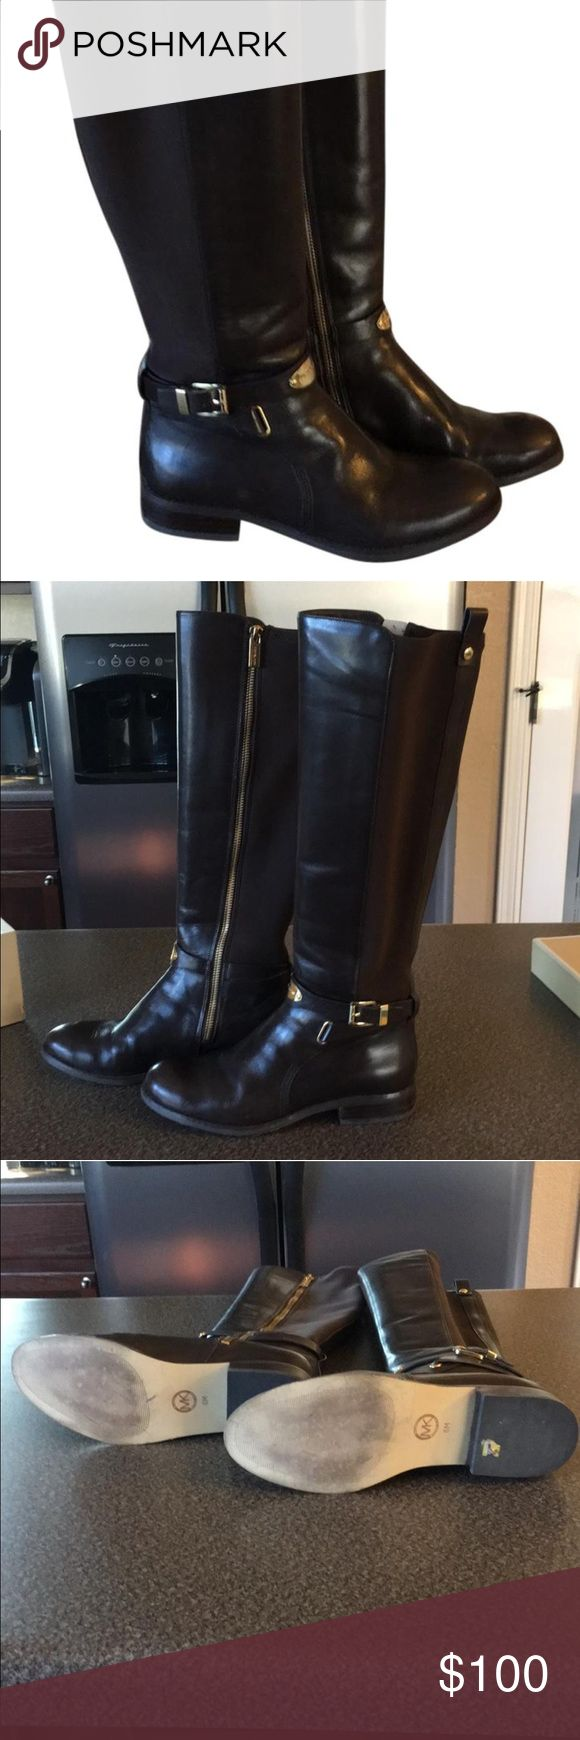 Arley Stretch Boot by Micheal Kors Michael Kors Leather Boots  They are in great condition with very minimal scuffs. They still have their original box. Michael Kors Shoes Winter & Rain Boots